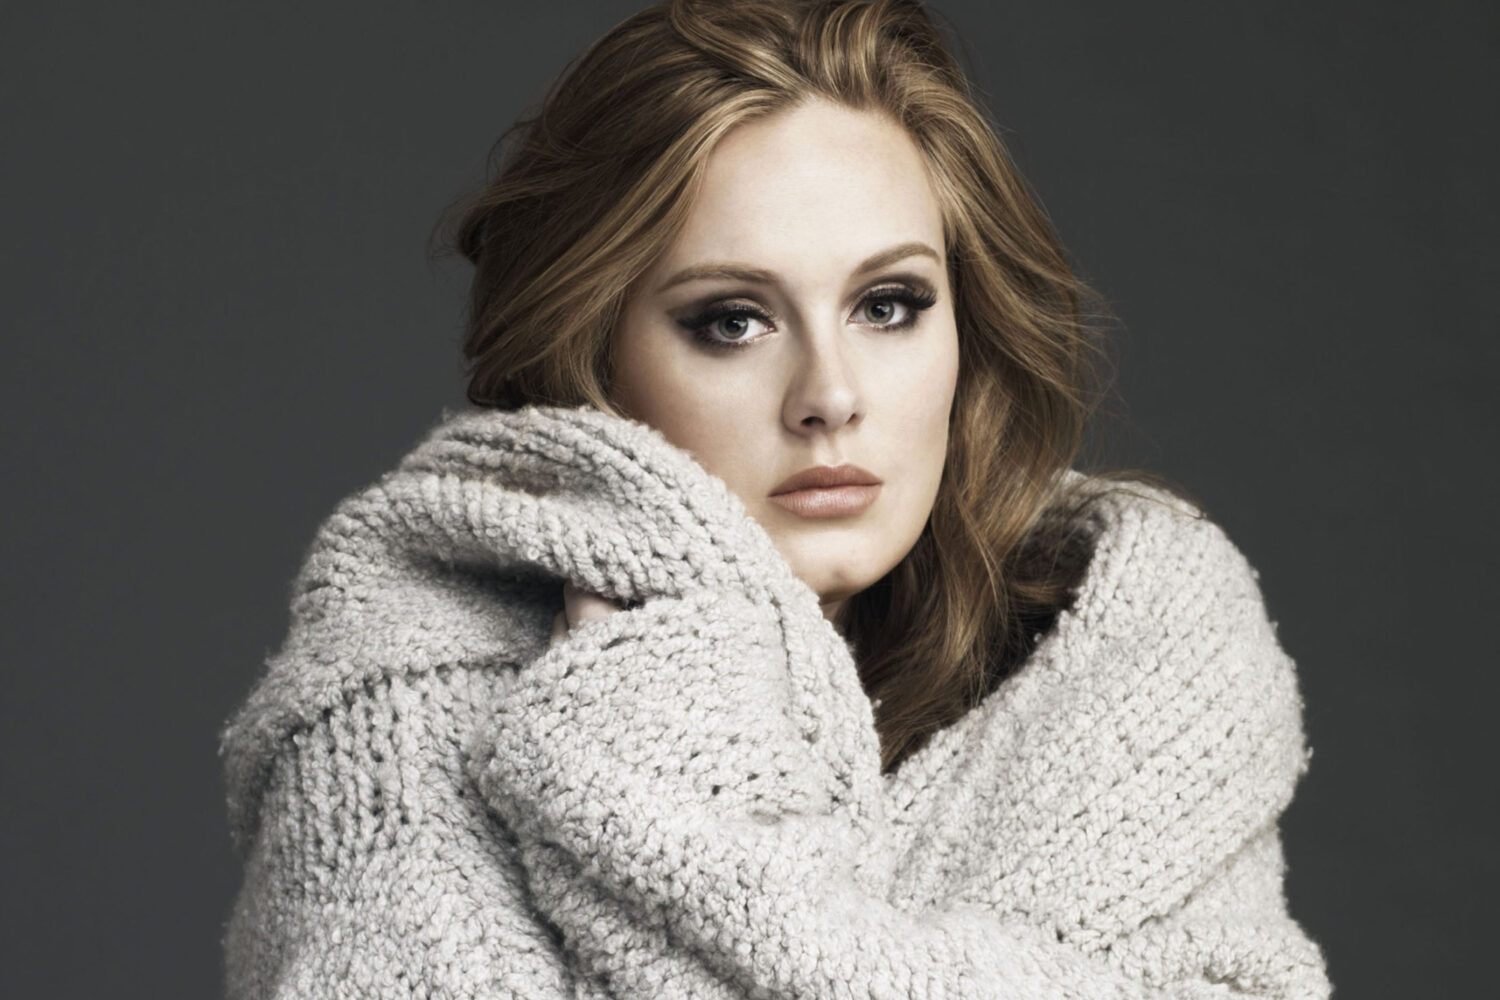 Crikey, Adele's announced two shows at Wembley Stadium